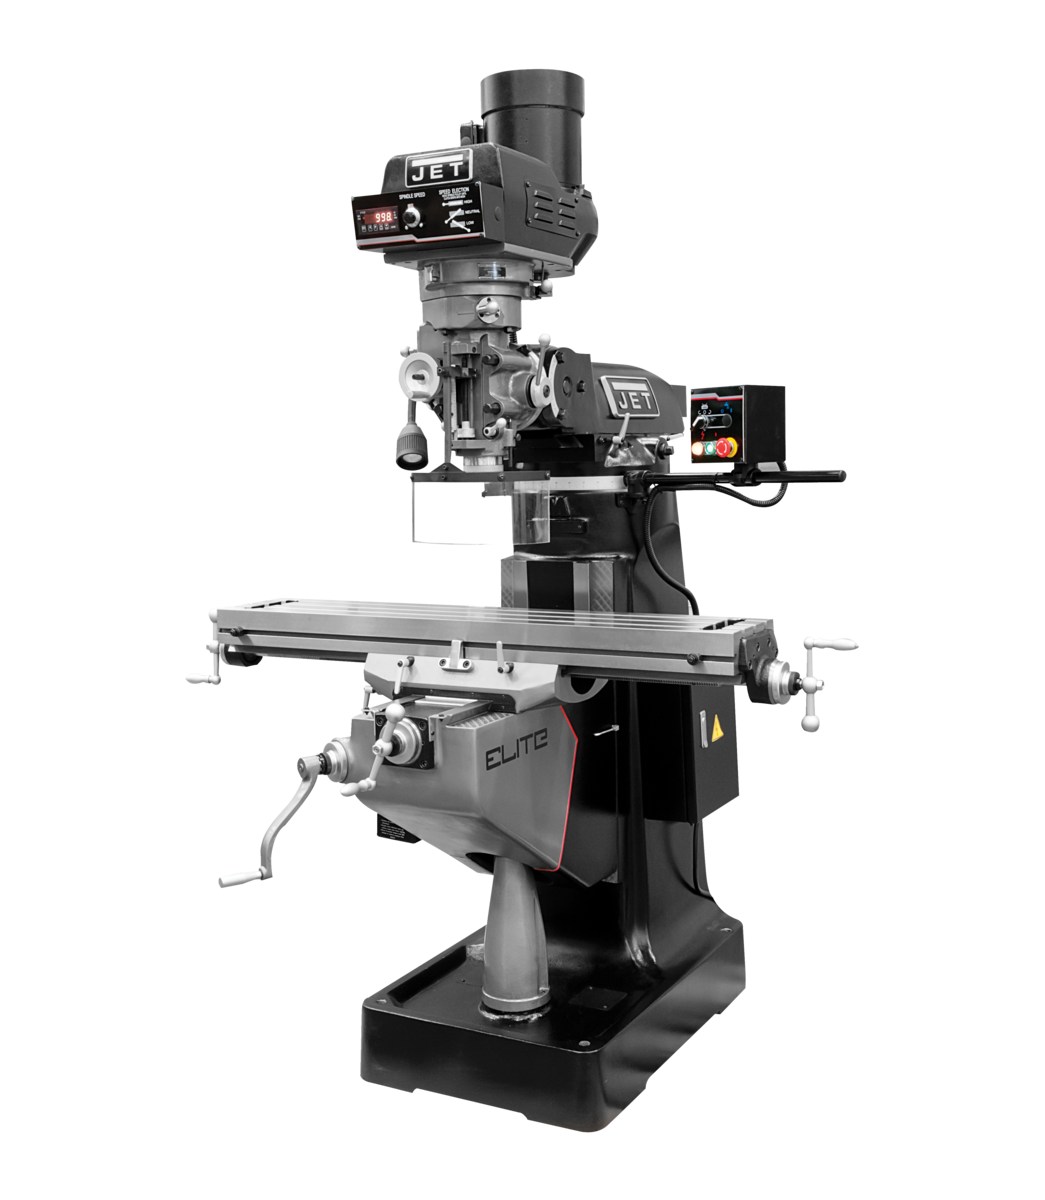 EVS-949 Mill with 3-Axis ACU-RITE 203 (Quill) DRO and Servo X, Y-Axis Powerfeeds and USA Air Powered Draw Bar